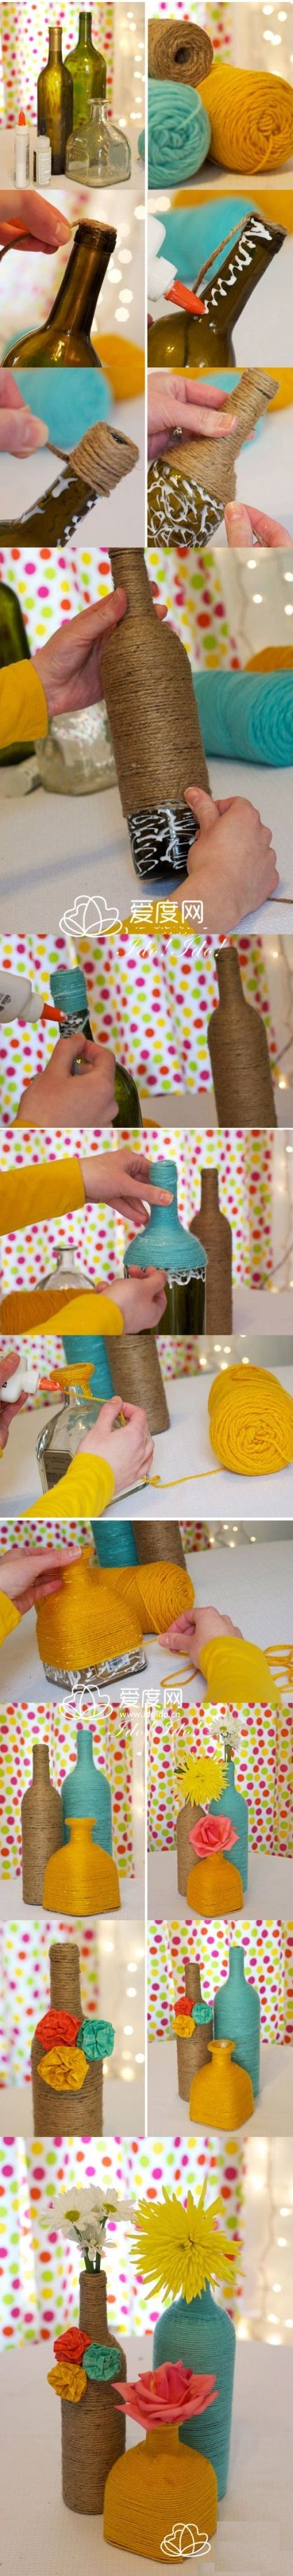 DIY envuelto tutorial botella